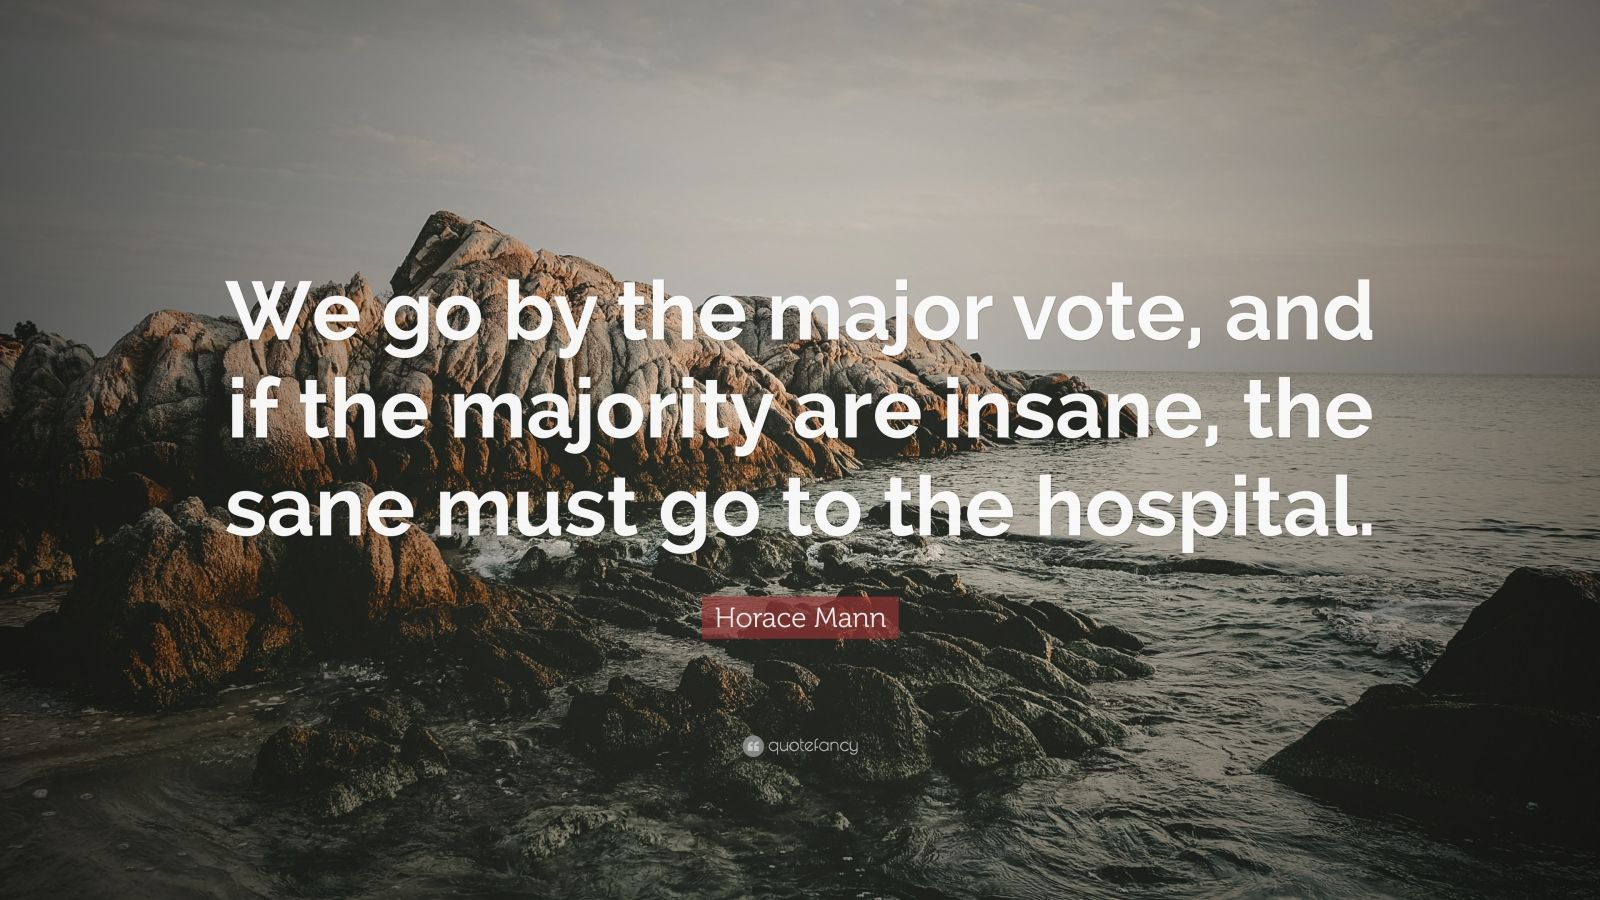 """Horace Mann Quote: """"We go by the major vote, and if the majority are insane, the sane must go to the hospital."""""""